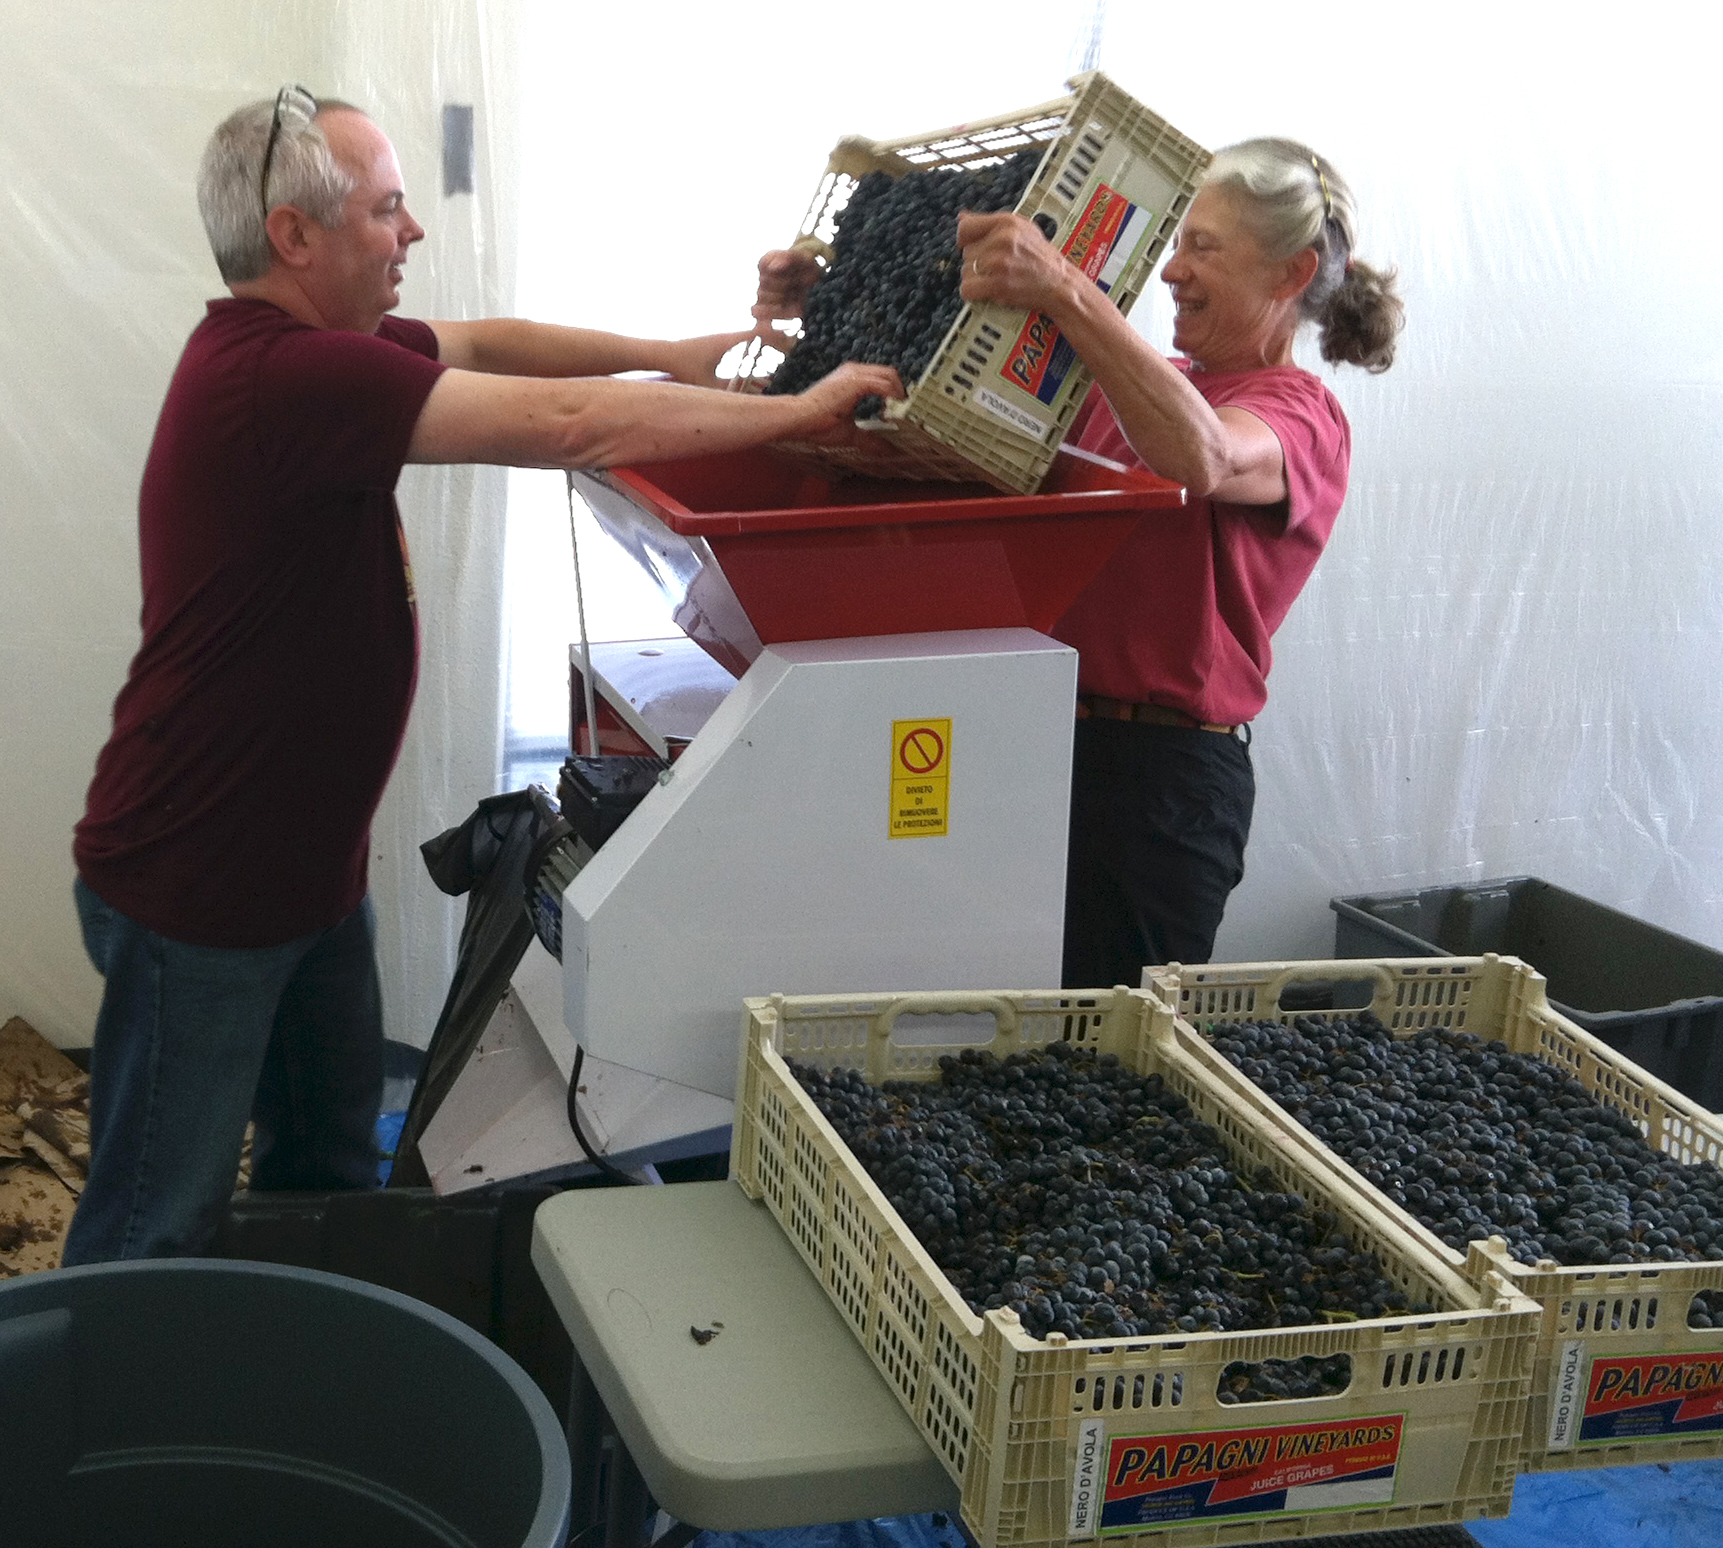 grapes-to-glass-2014-crushing-grapes.jpg